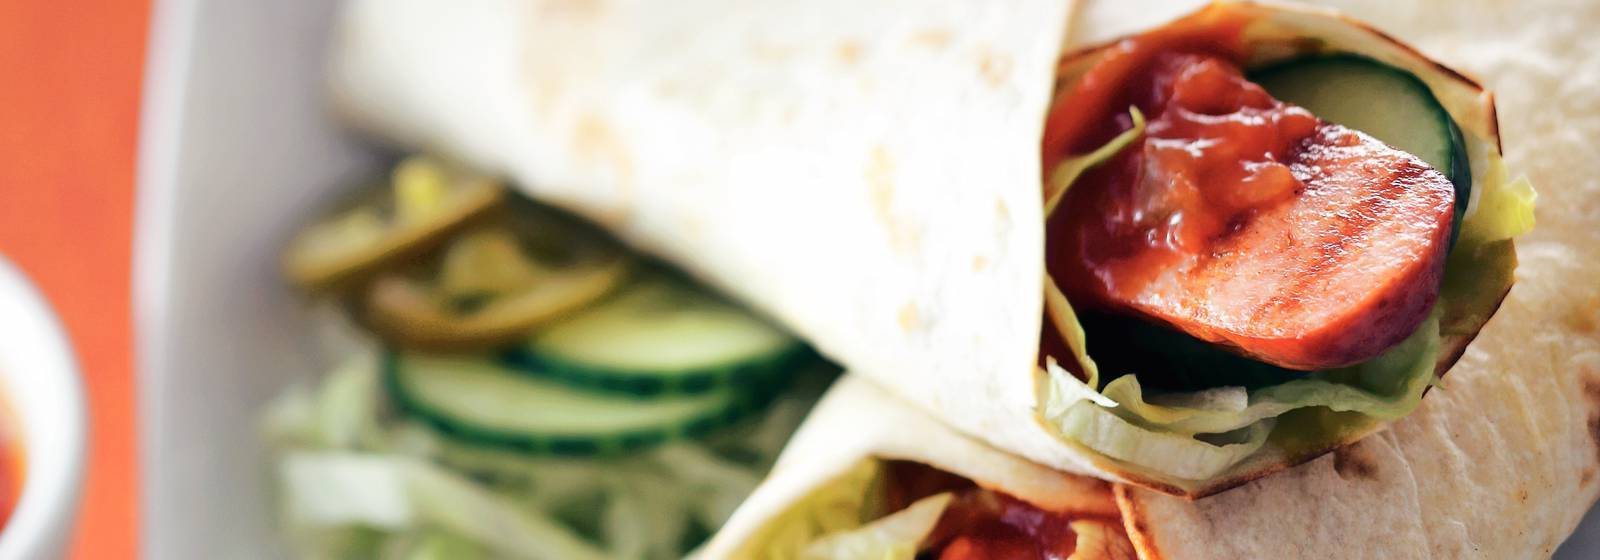 Wrap with grilled smoked sausage